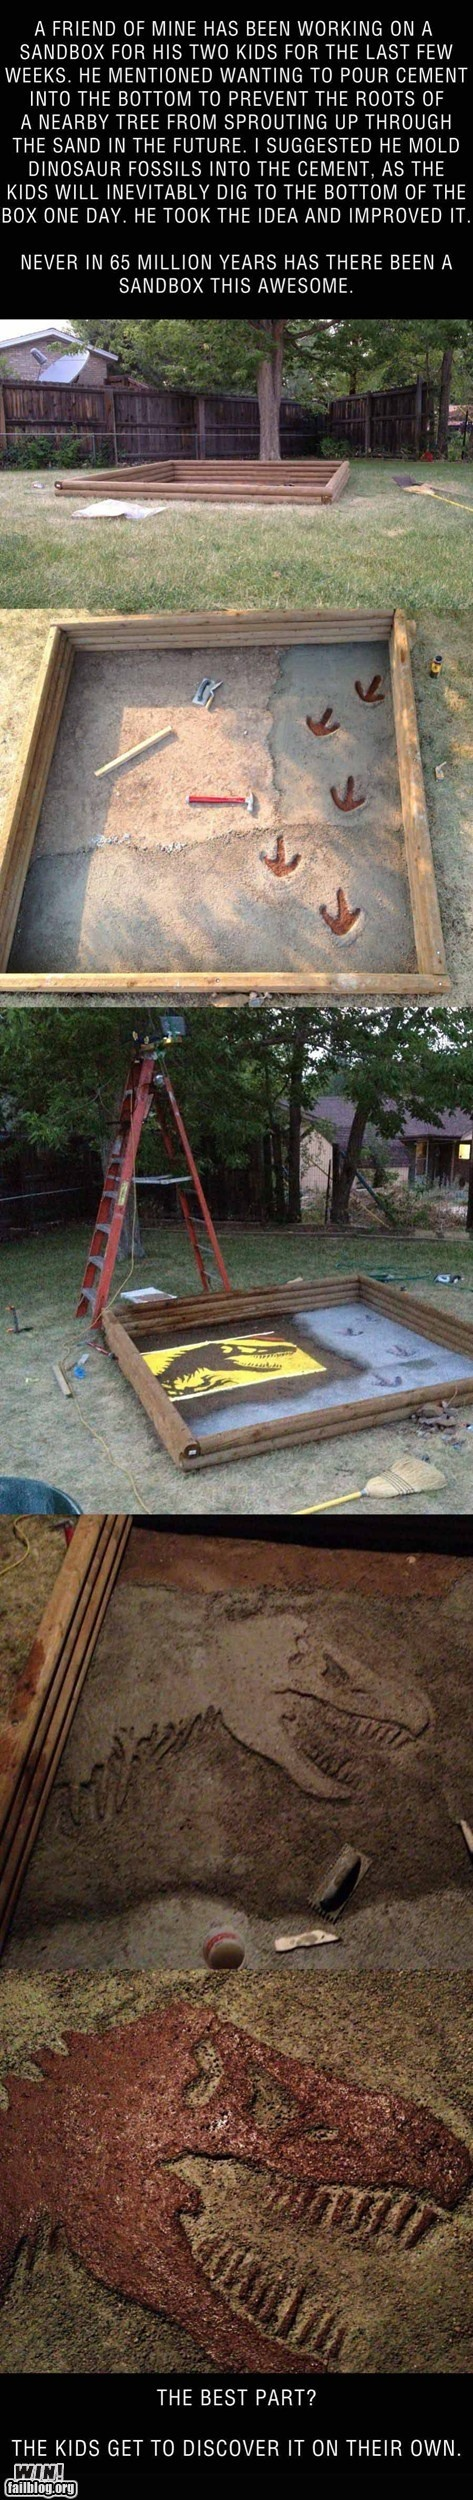 Sandbox Surprise WIN (If I have kids WILL do this and put dinosaur bones in the bottom)